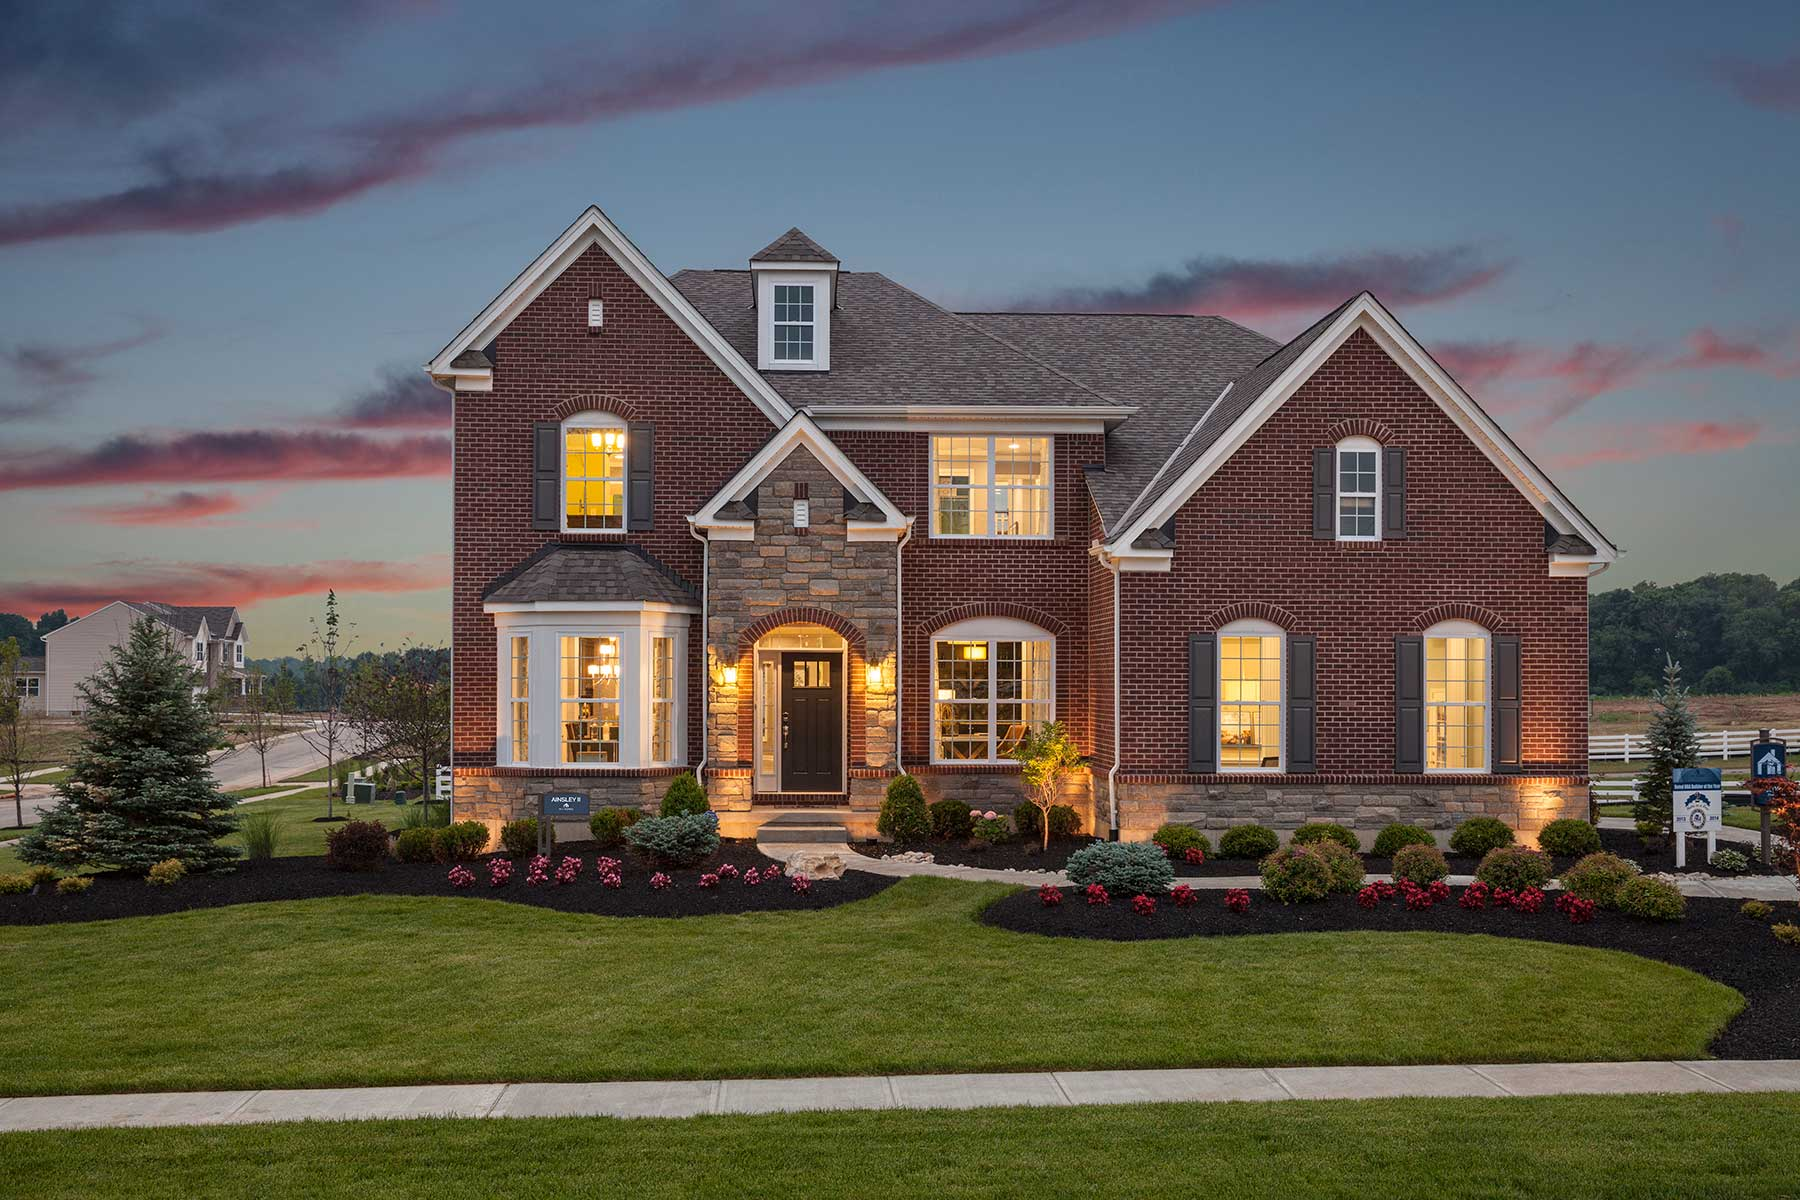 In House Financing Car Lots >> Claiborne Greens at Stonehill - Homes for Sale in Beavercreek, OH - M/I Homes